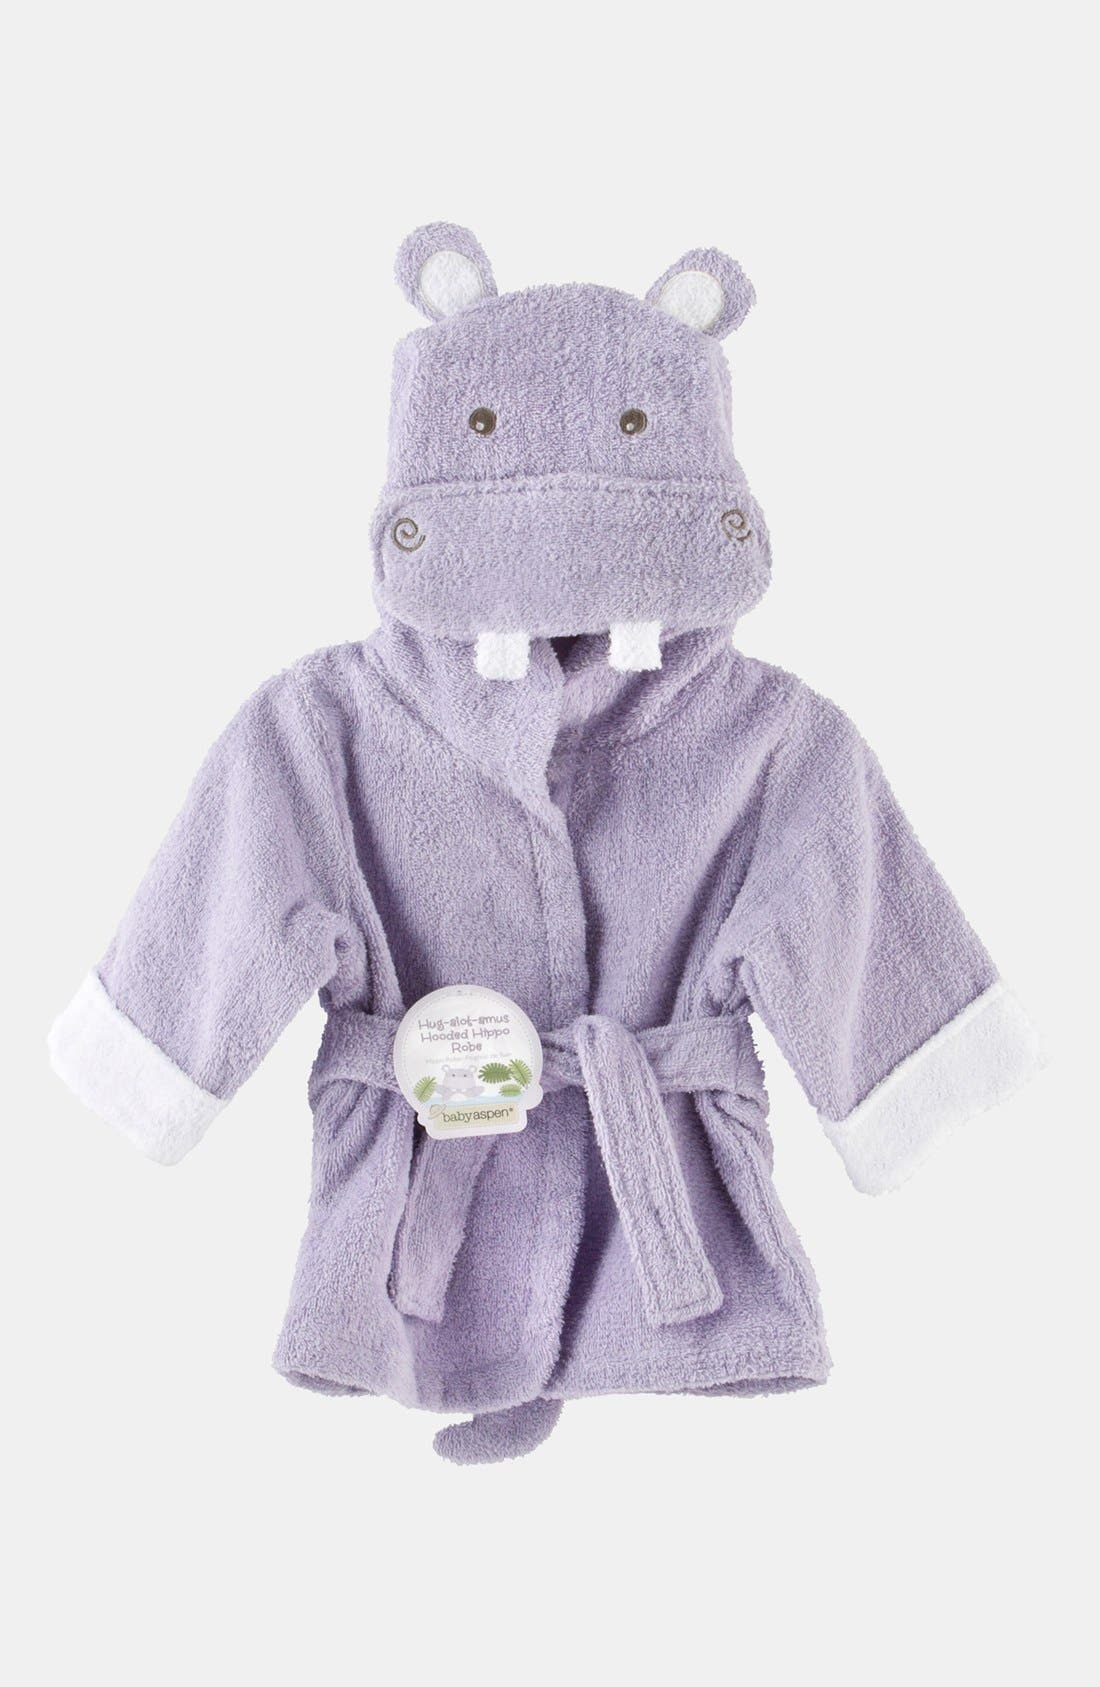 Alternate Image 1 Selected - Baby Aspen 'Hug a Lot Amus' Hooded Robe (Baby)